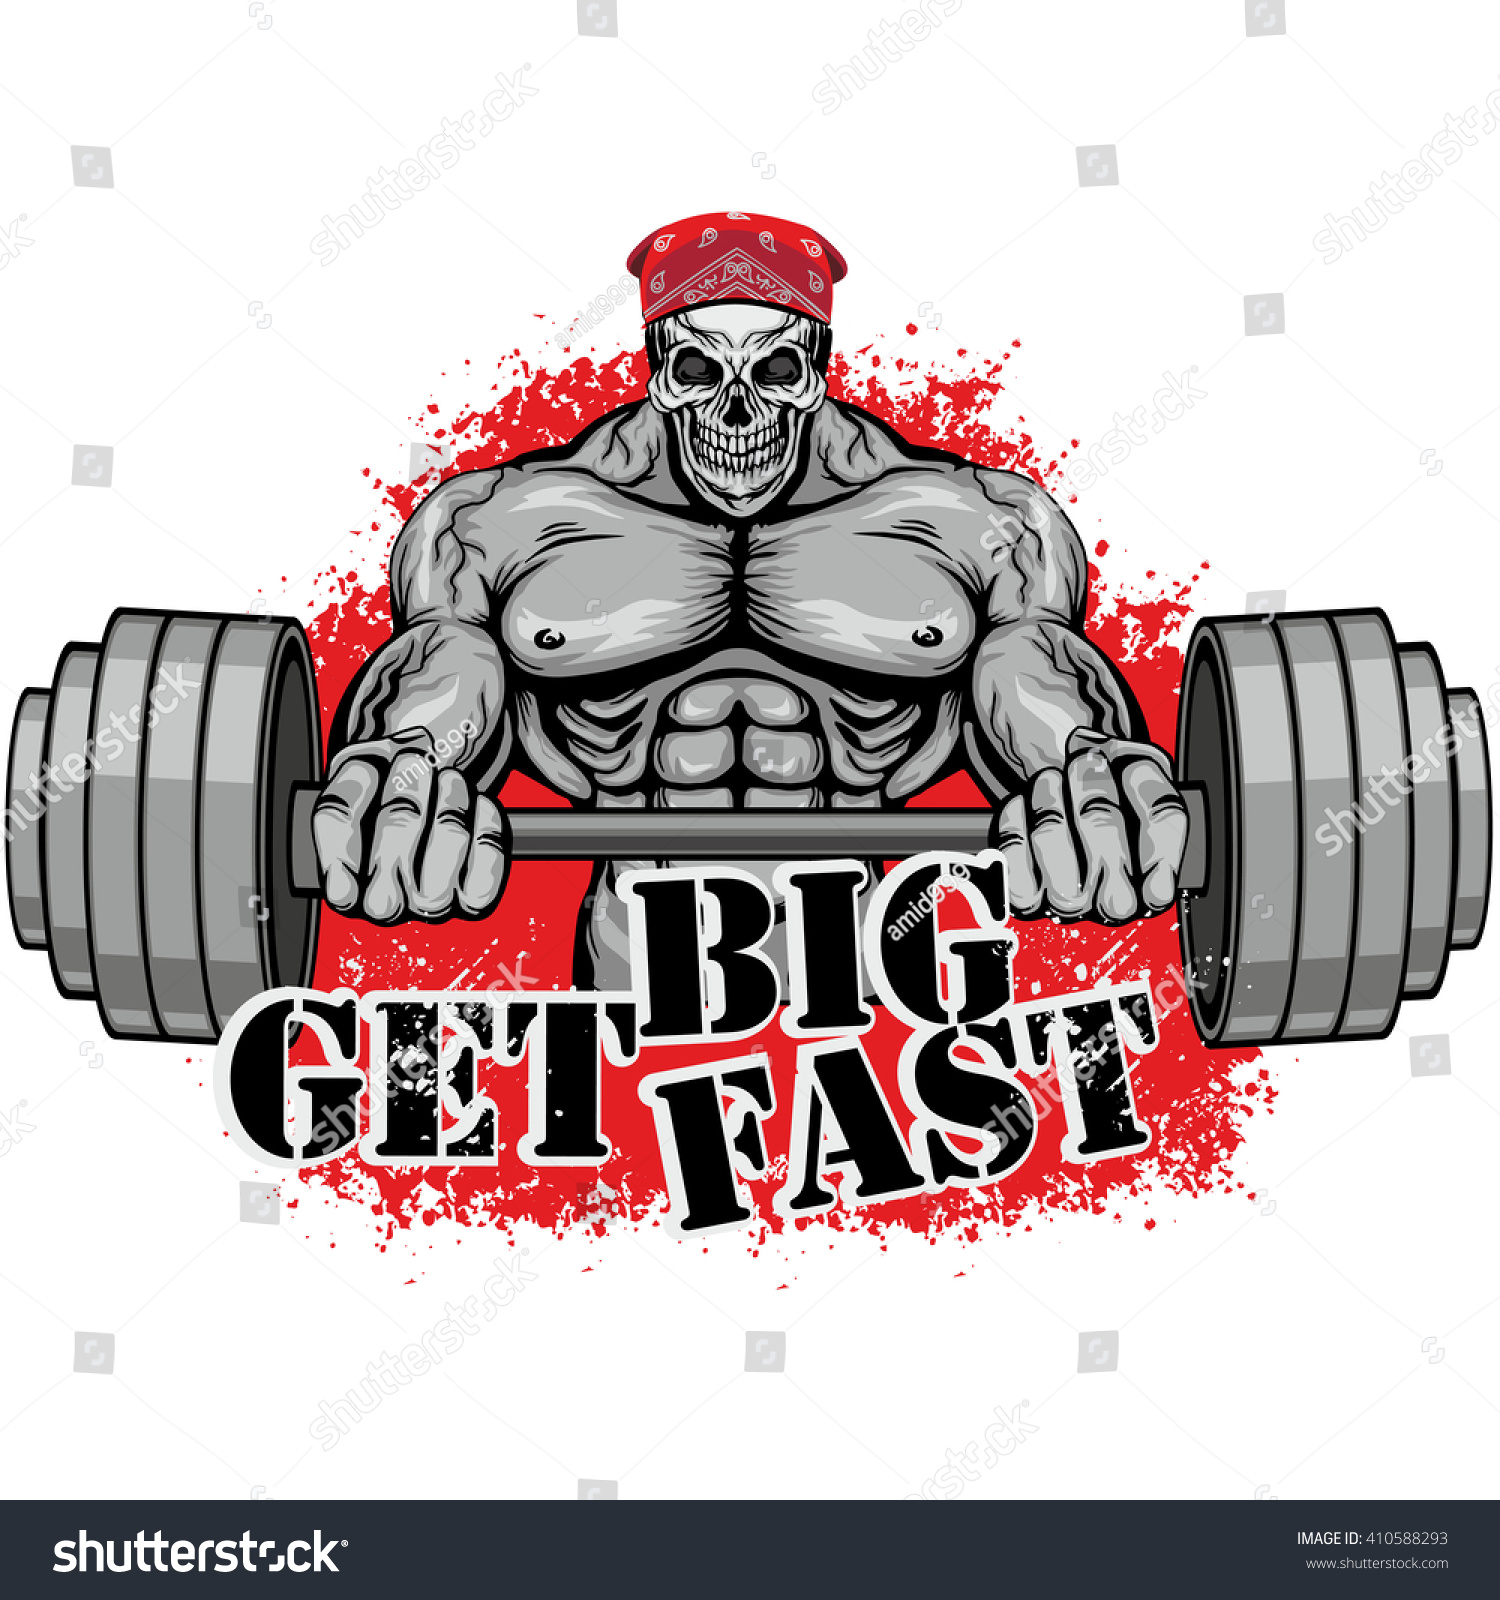 Shirt design equipment